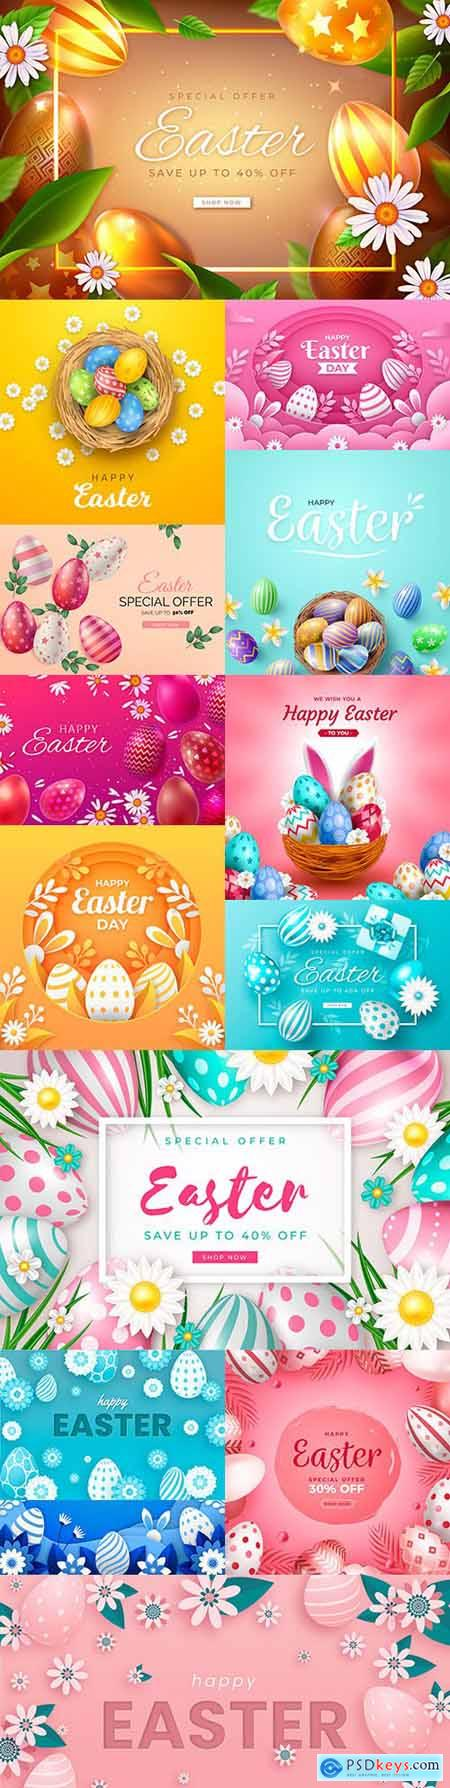 Bright Easter sale realistic illustration in paper style